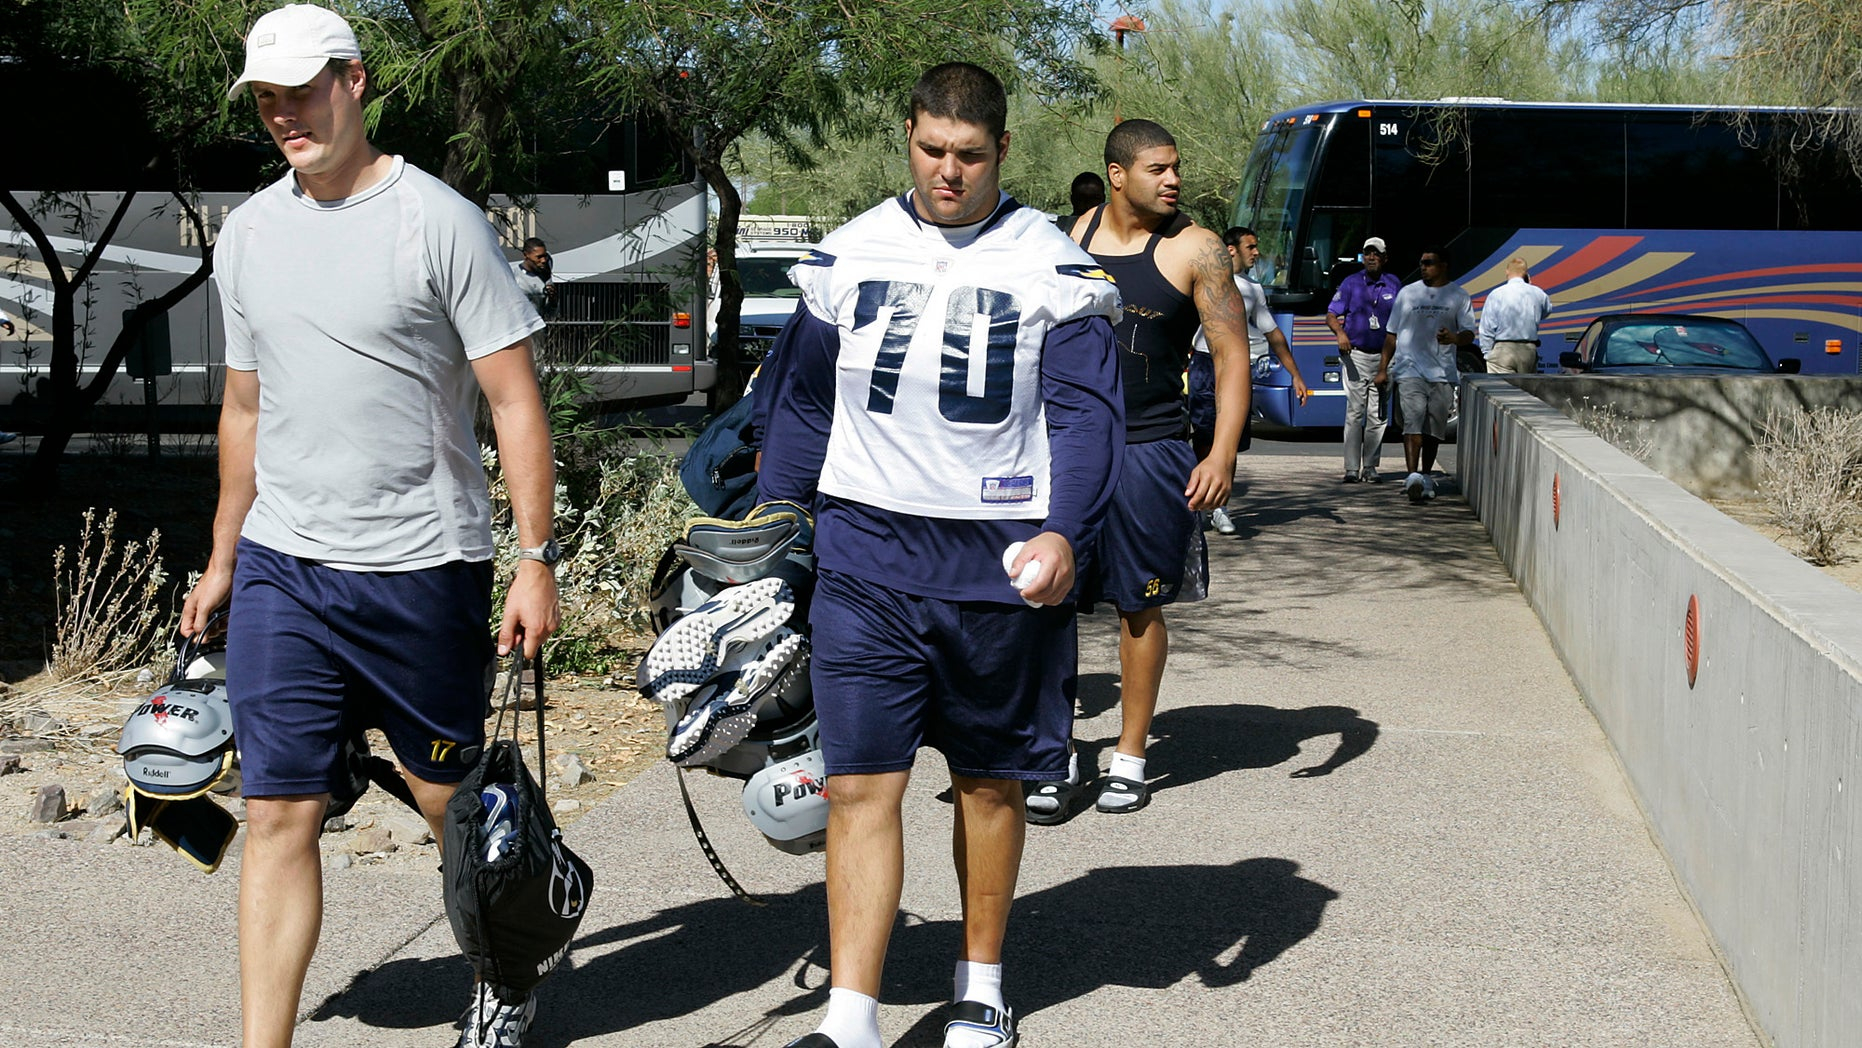 FILE - In this Oct. 24, 2007 file photo, San Diego Chargers' Philip Rivers, left, Shane Olivea (70) and Shawne Merriman, right, arrive for practice with teammates and coaches at the Arizona Cardinals training facility  in Tempe, Ariz.   Olivea, whose NFL career fell apart because of a painkiller addiction says he wants to become a college coach and help others avoid similar pitfalls now that he's clean and has a degree. (AP Photo/Ross D. Franklin)